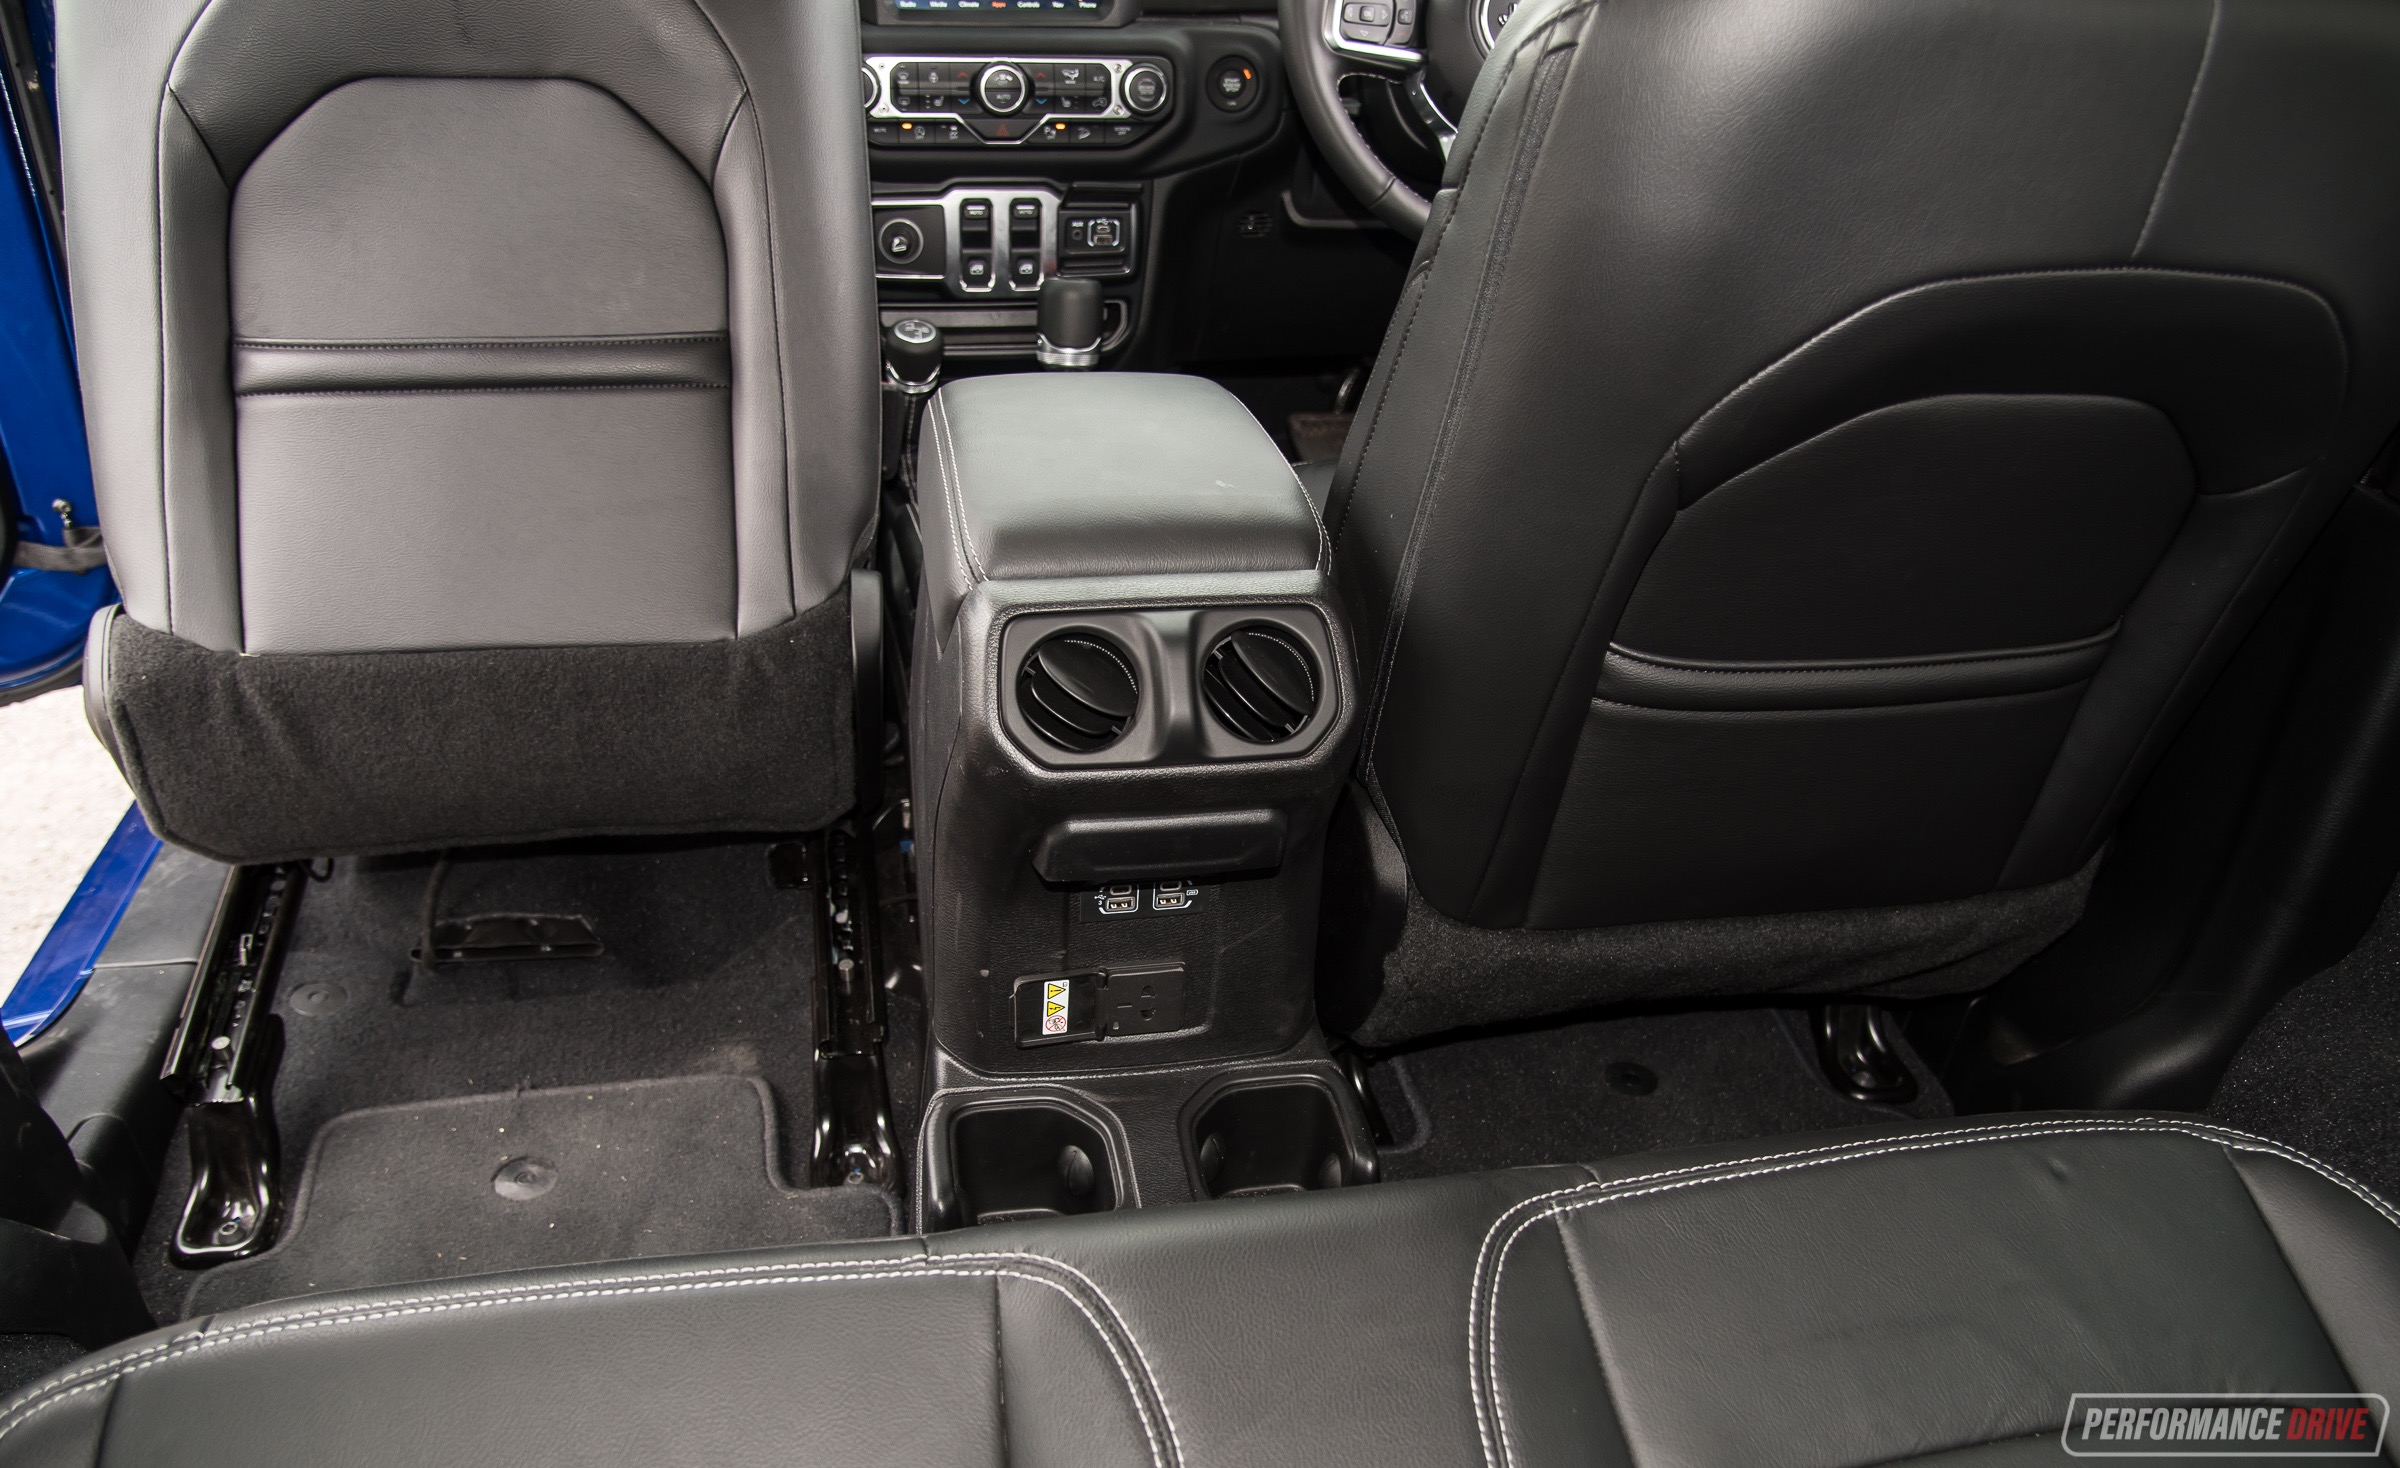 Astounding 2019 Jeep Wrangler Overland V6 Review Video Performancedrive Gmtry Best Dining Table And Chair Ideas Images Gmtryco